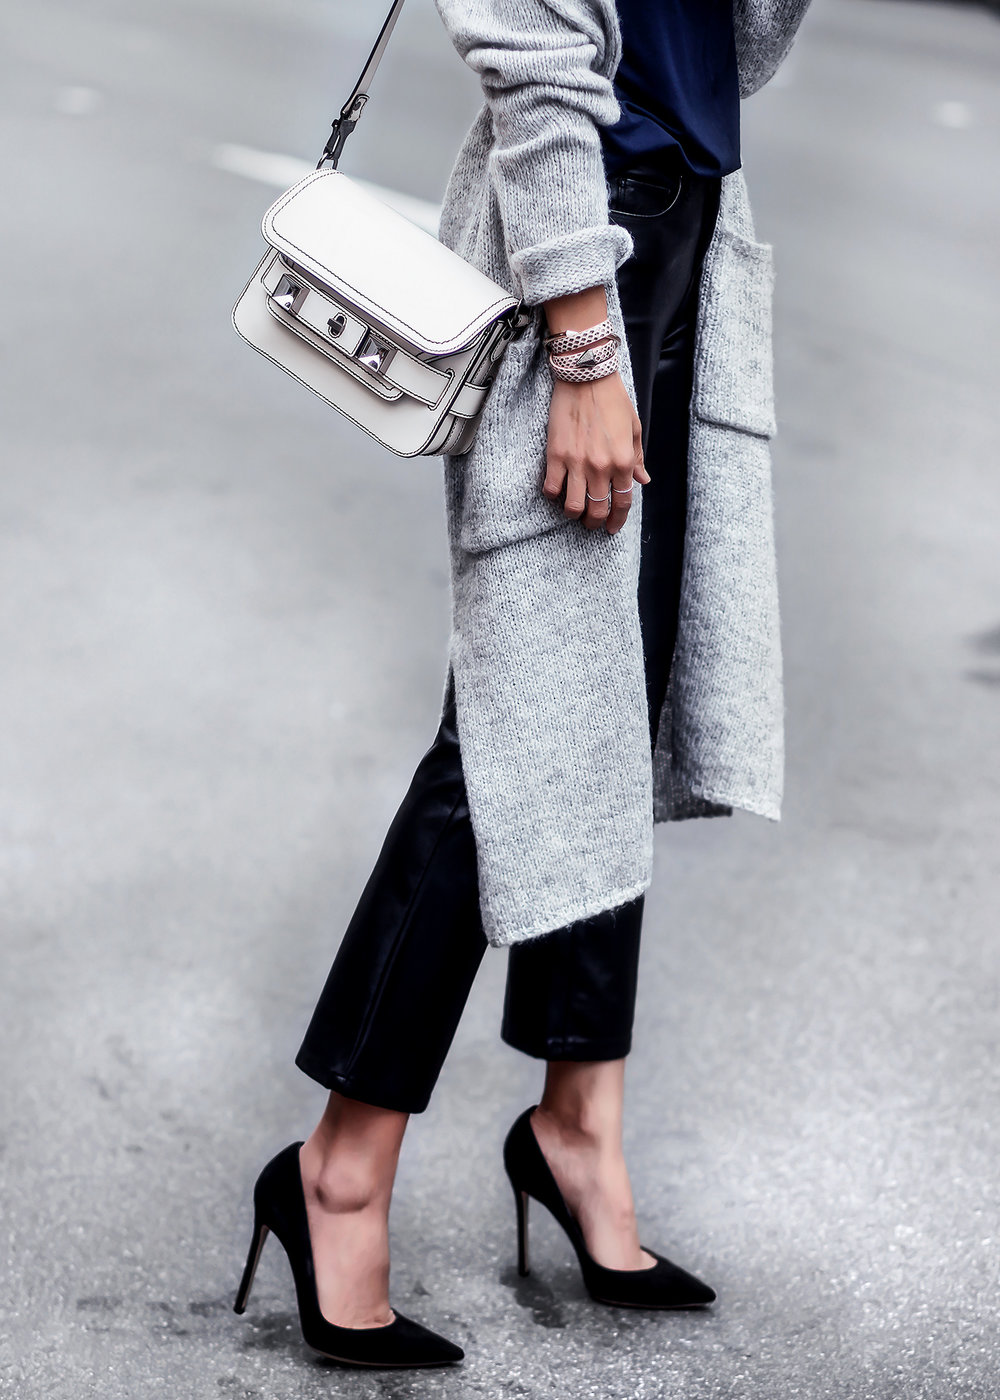 Cropped_BlankNYC_Leather_Pants_Long_Cardigan_Sweater_Proenza_Schouler.jpg